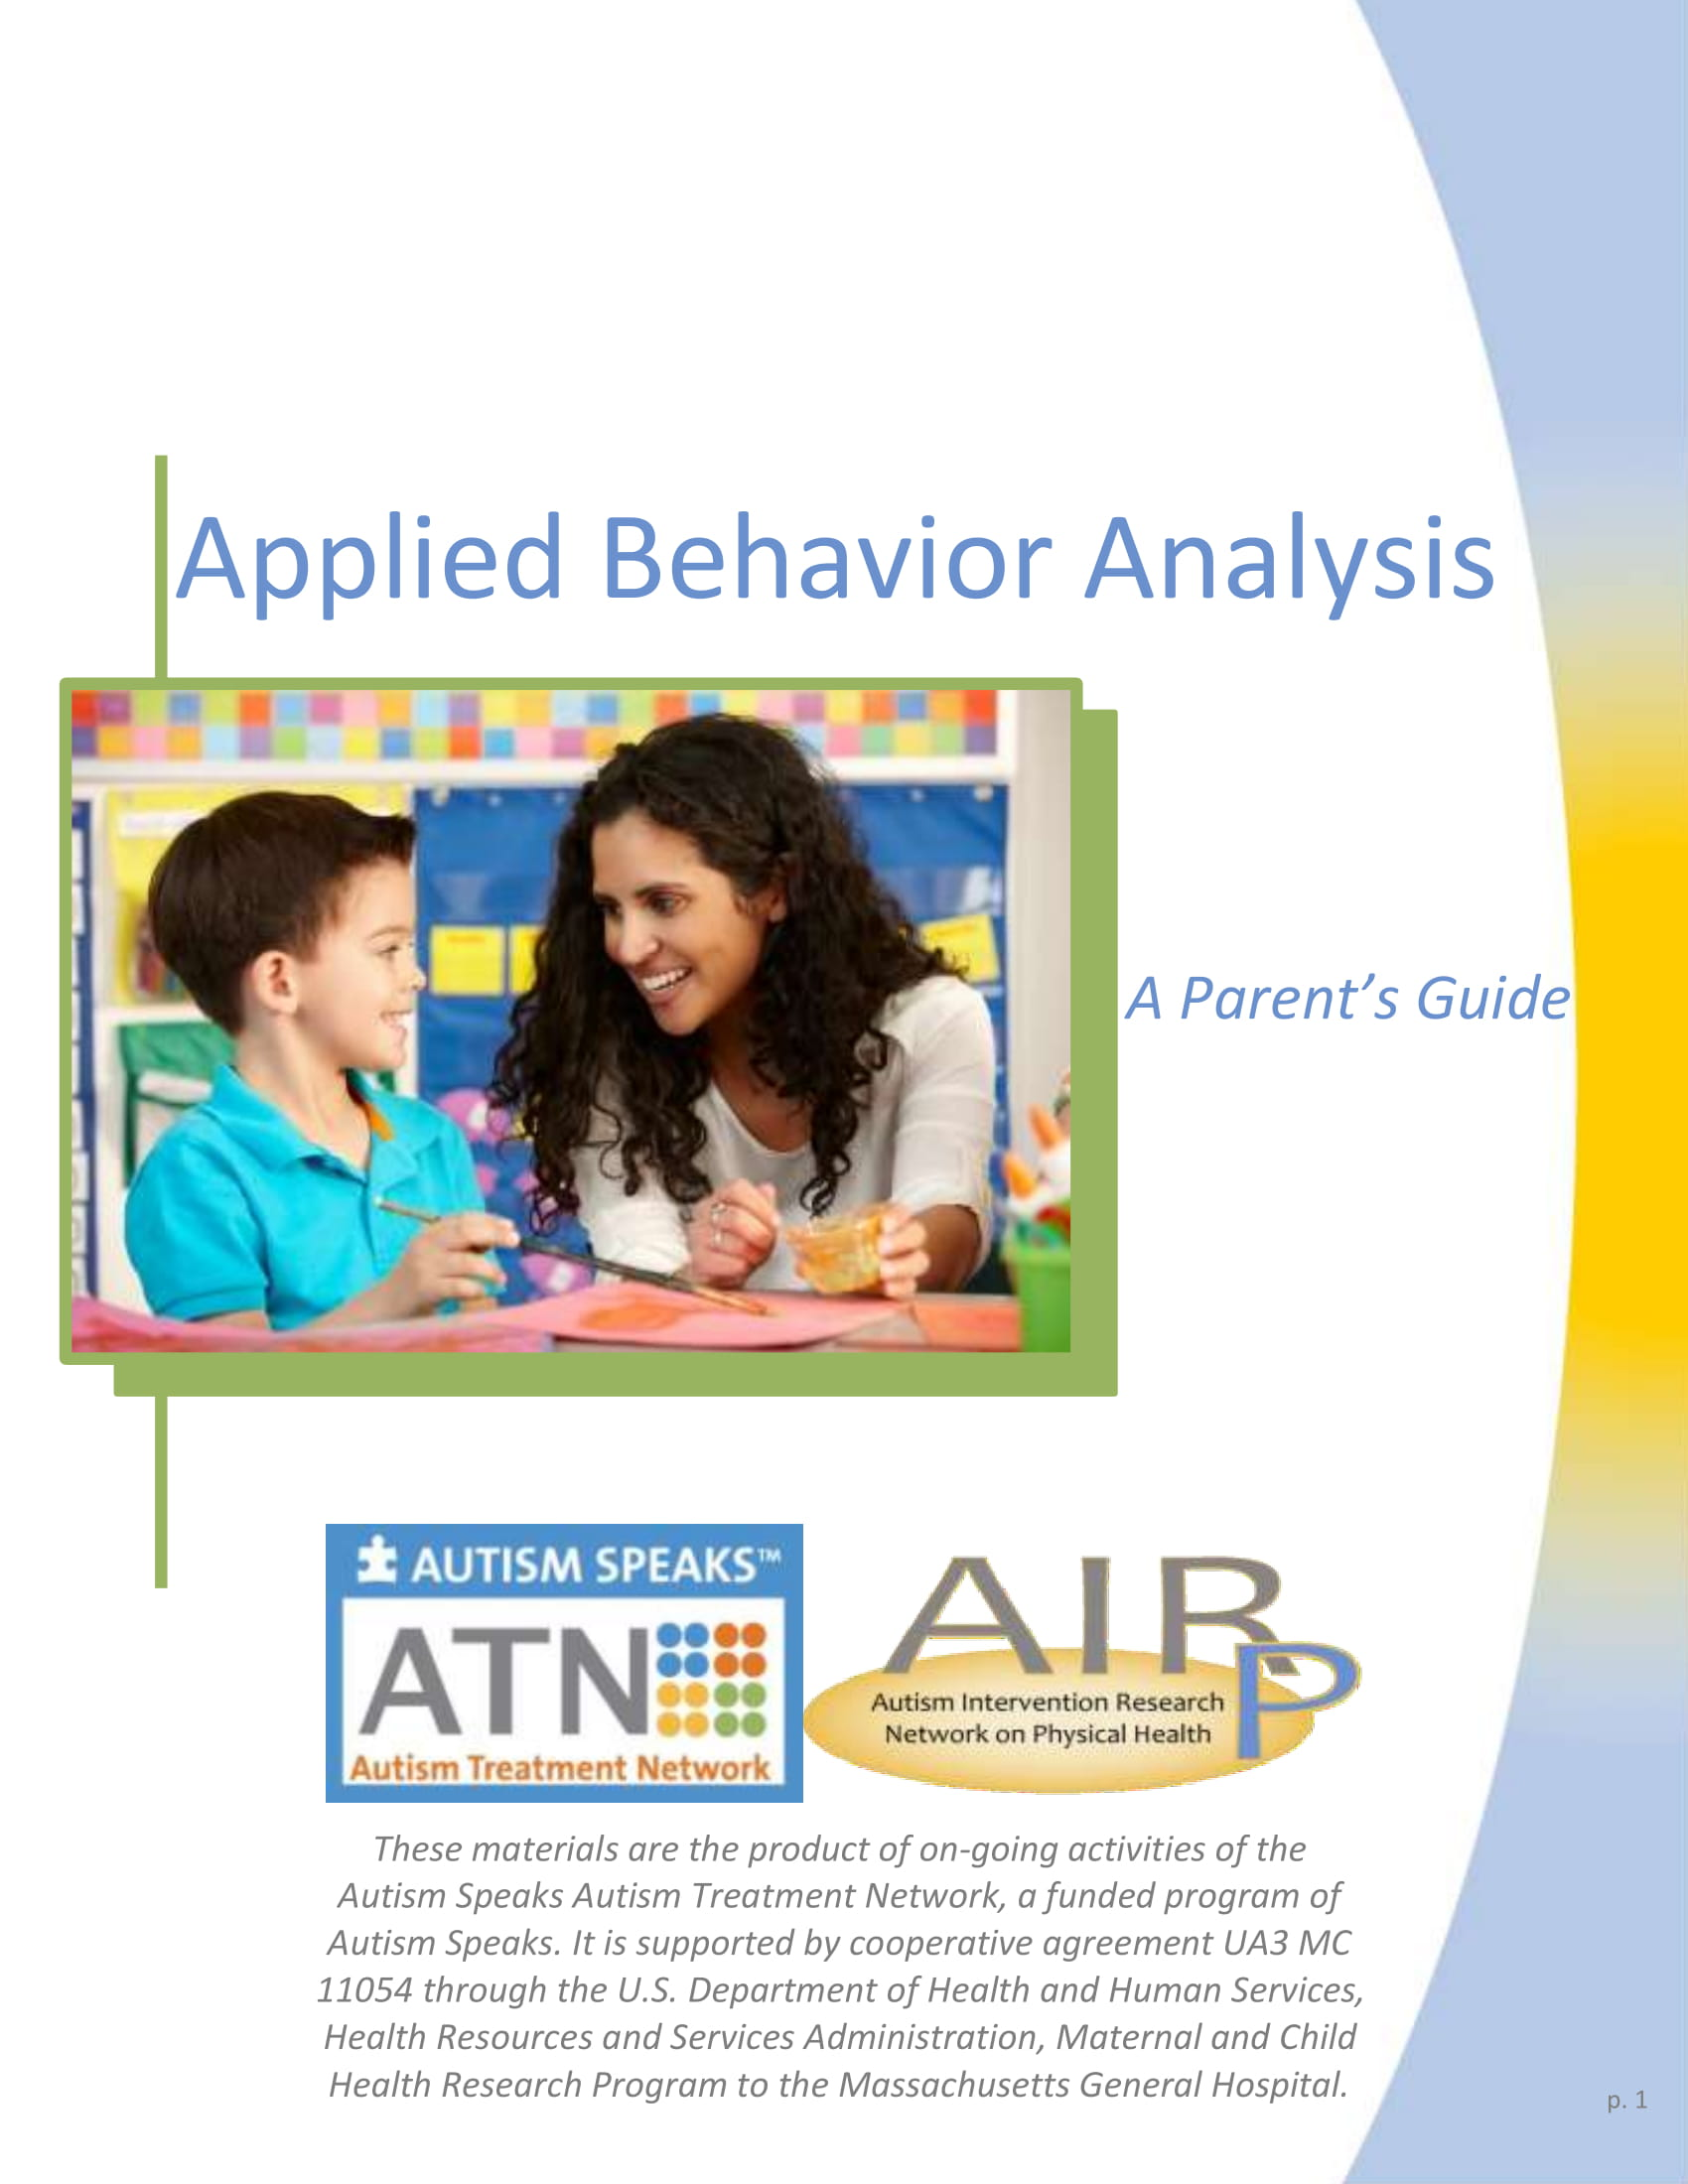 Applied Behavior Analysis – Autism Speaks